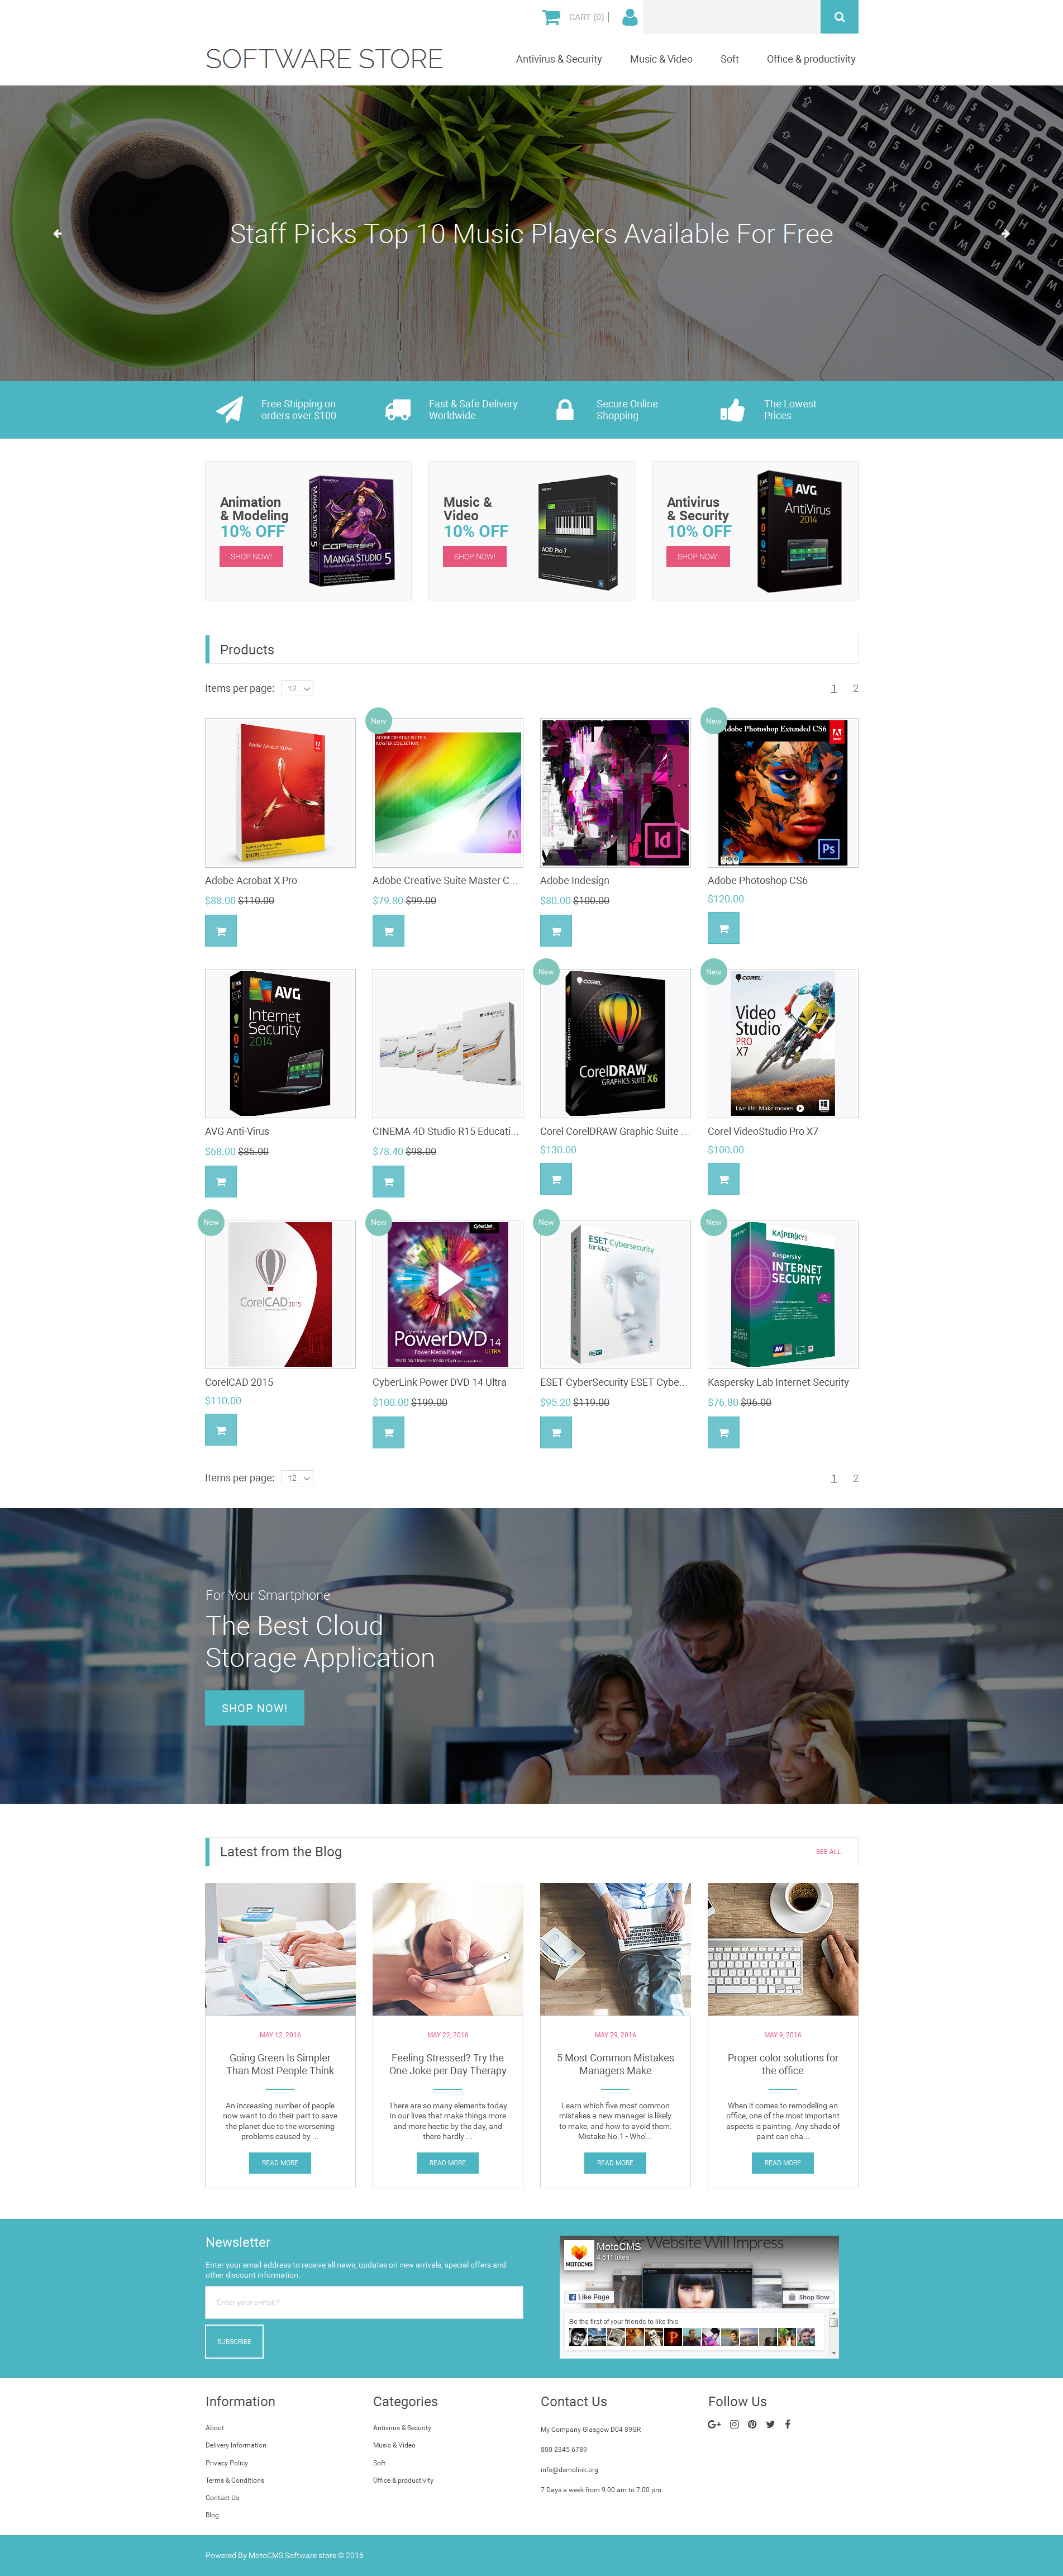 Software Store Responsive MotoCMS Ecommerce Template #58820